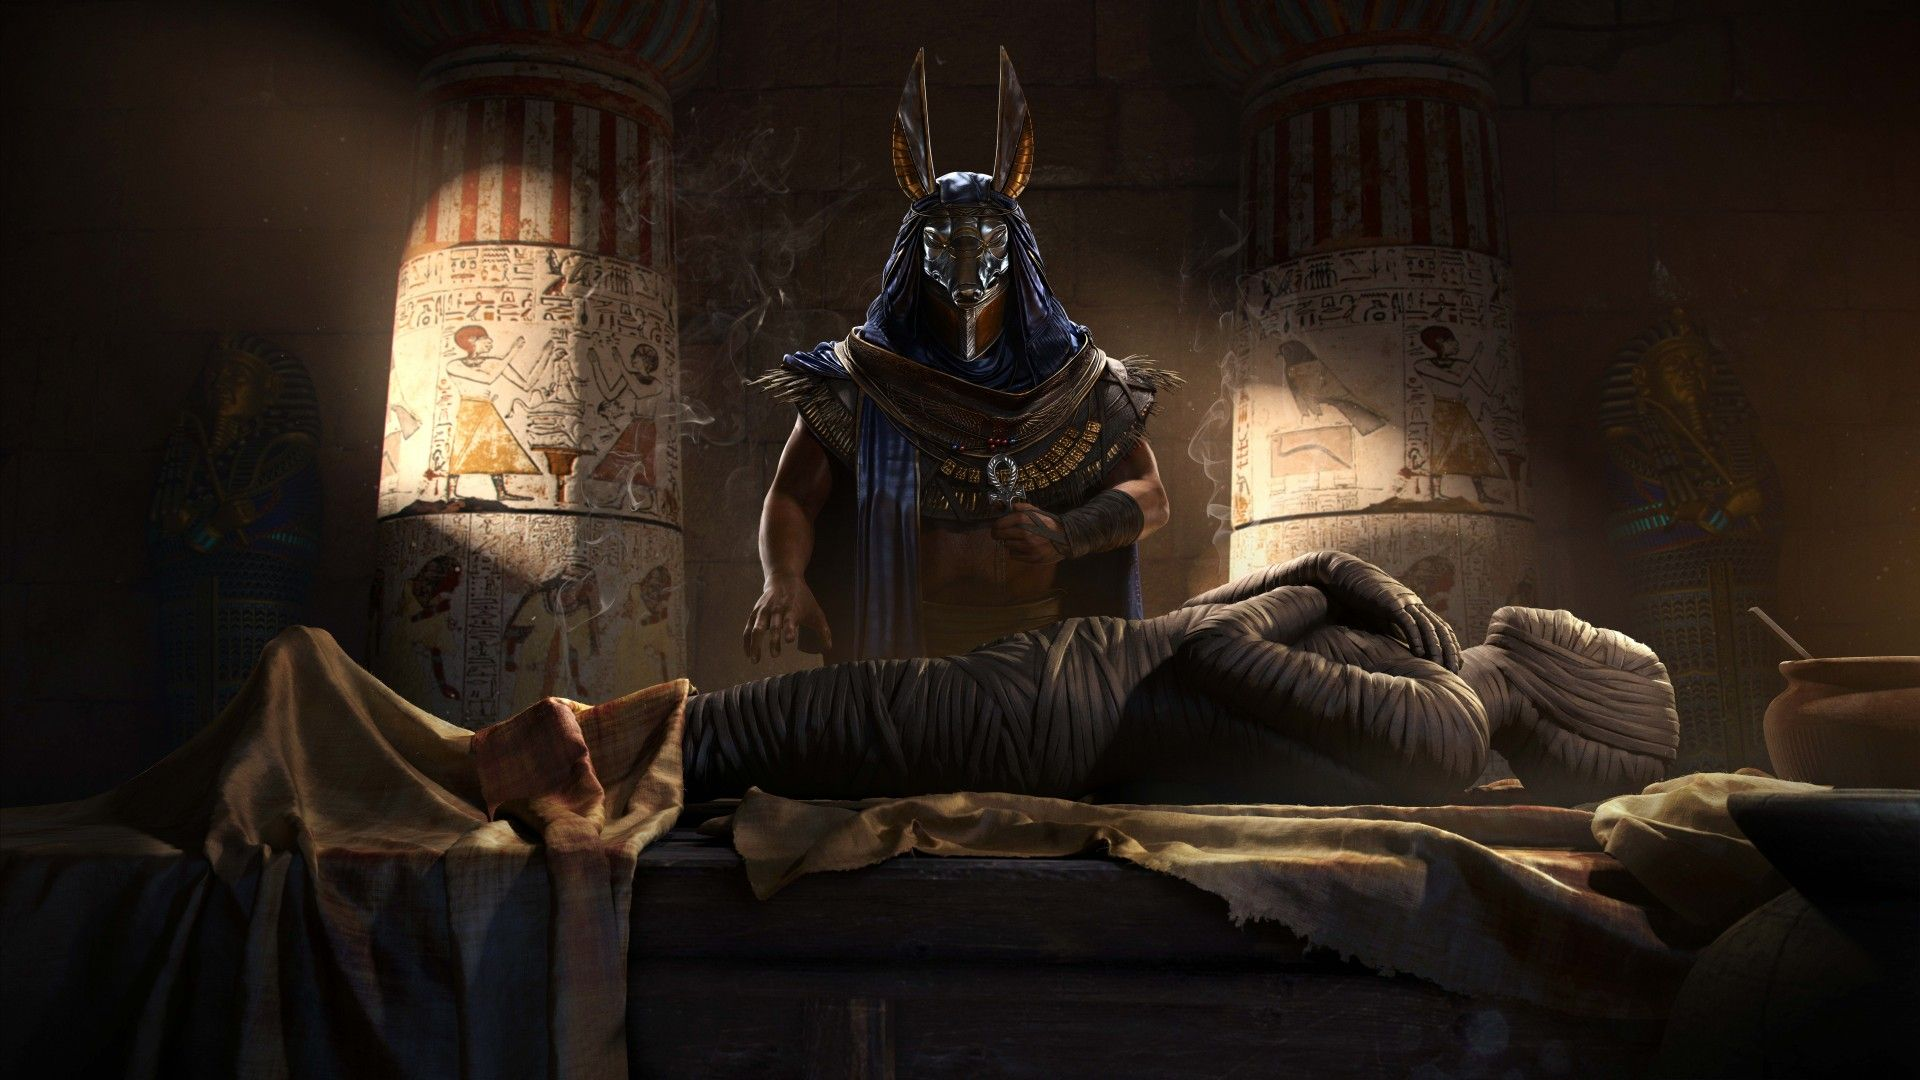 Download Wallpapers Of Assassins Creed Origins Mummy Egypt 4k